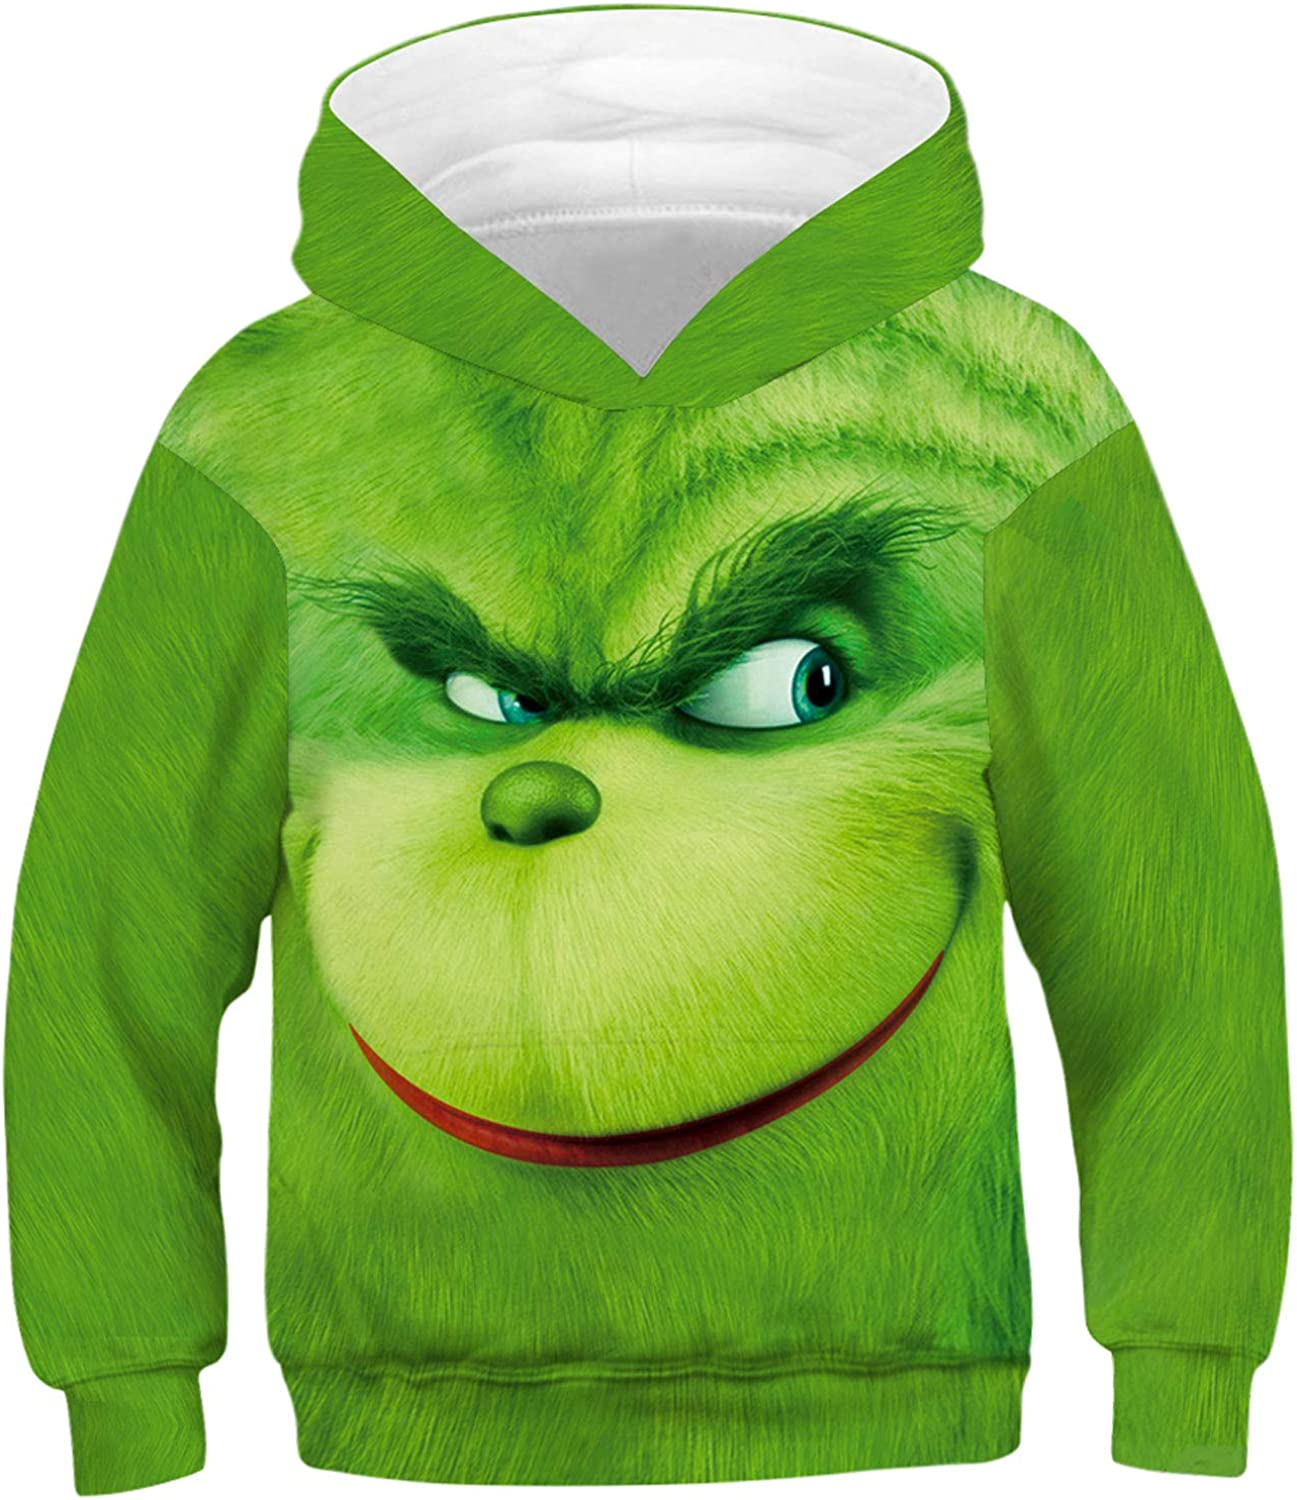 COUSIN CANAL Boys Girls Novelty Hoodie 3D Graphic Pullovers Christmas Sweatshirts